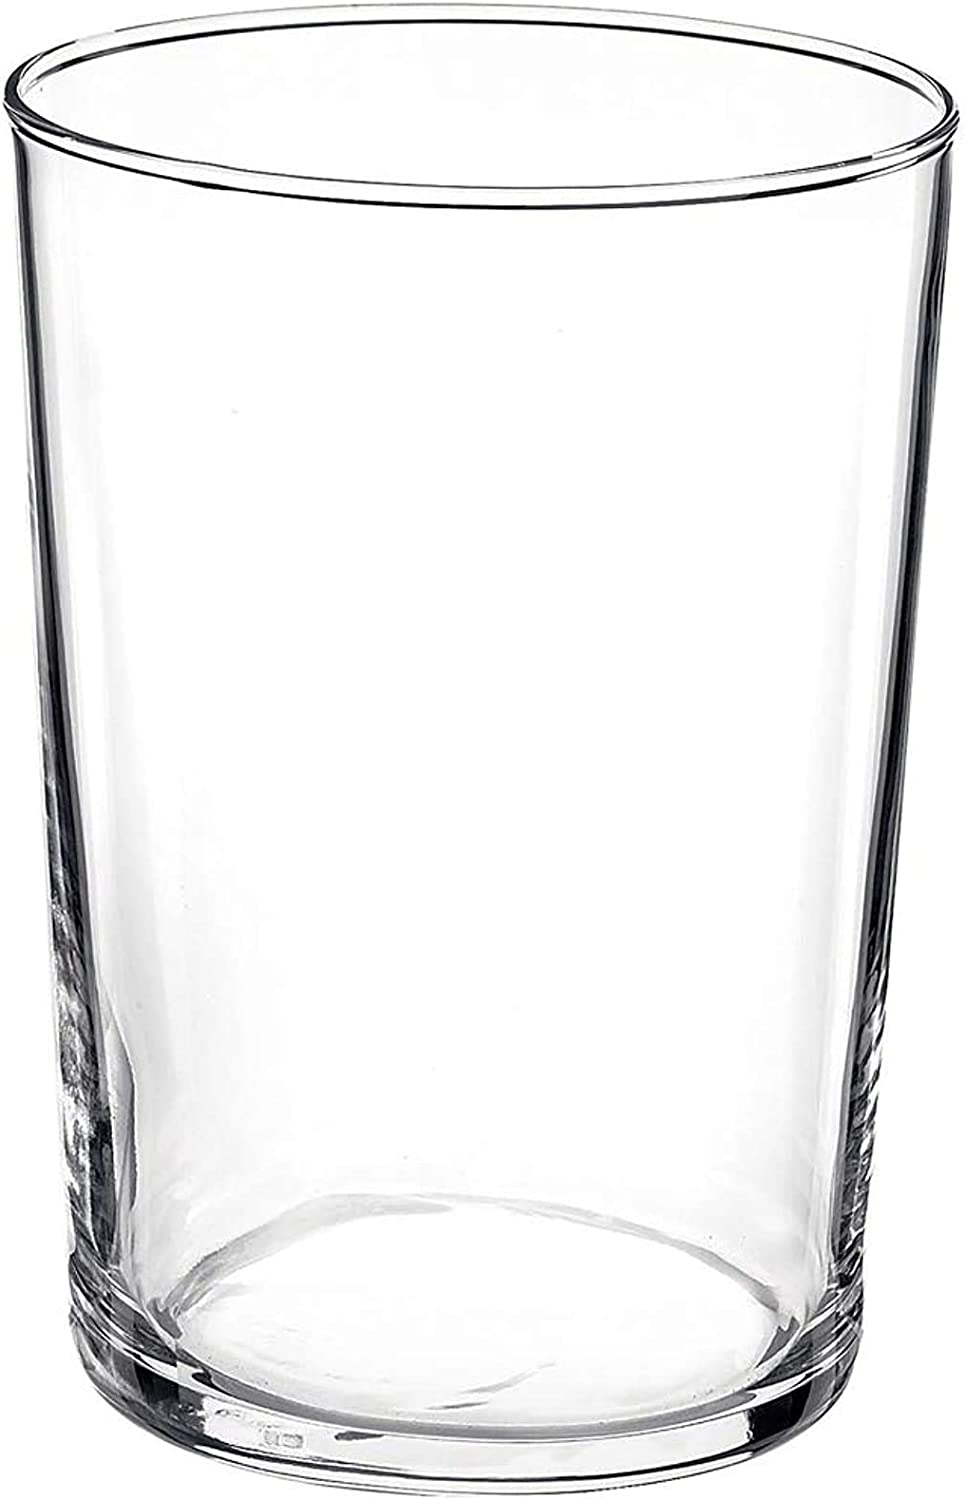 Bormioli Rocco Bodega Collection Glassware Set Of 12 Maxi 17 Ounce Drinking Glasses For Water Beverages Cocktails 17oz Clear Tempered Glass Tumblers Transparent Old Fashioned Glasses Tumblers Water Glasses